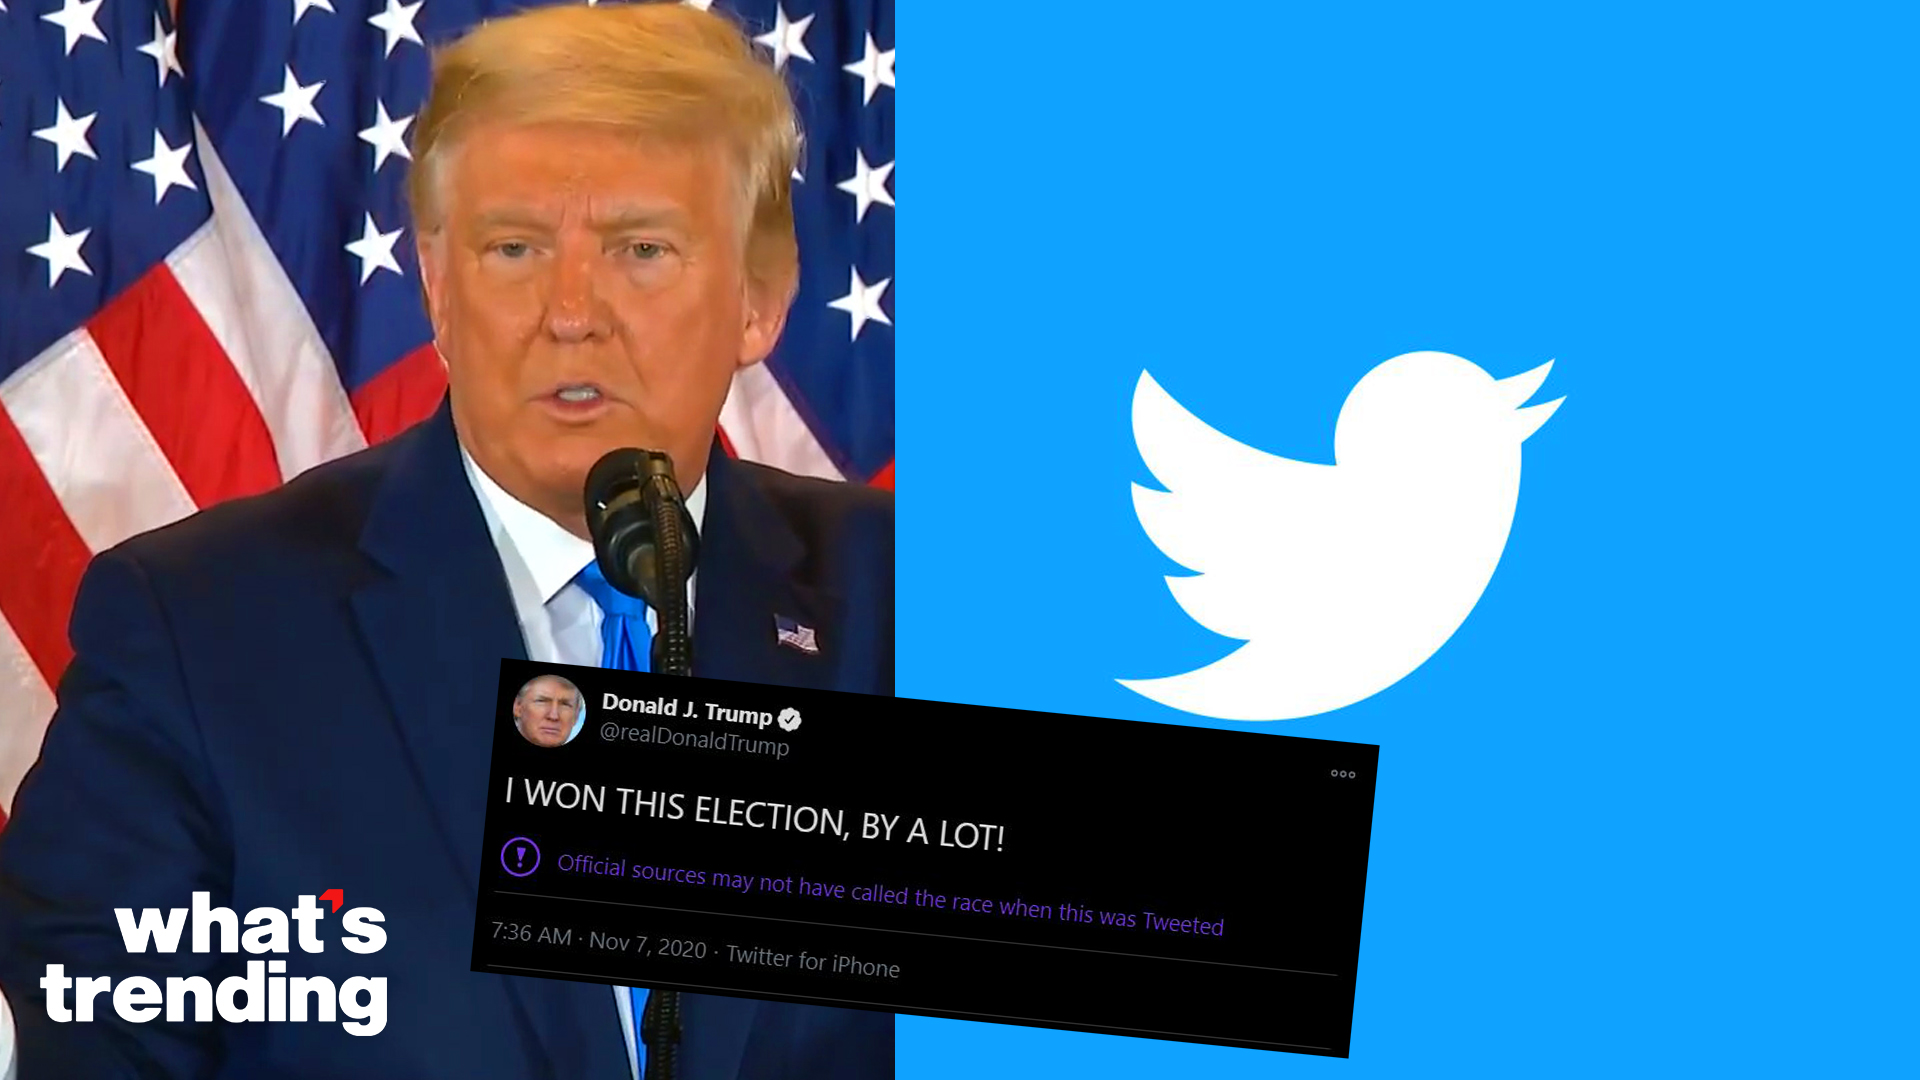 President Trump Will Lose Special Twitter Protections On January 20